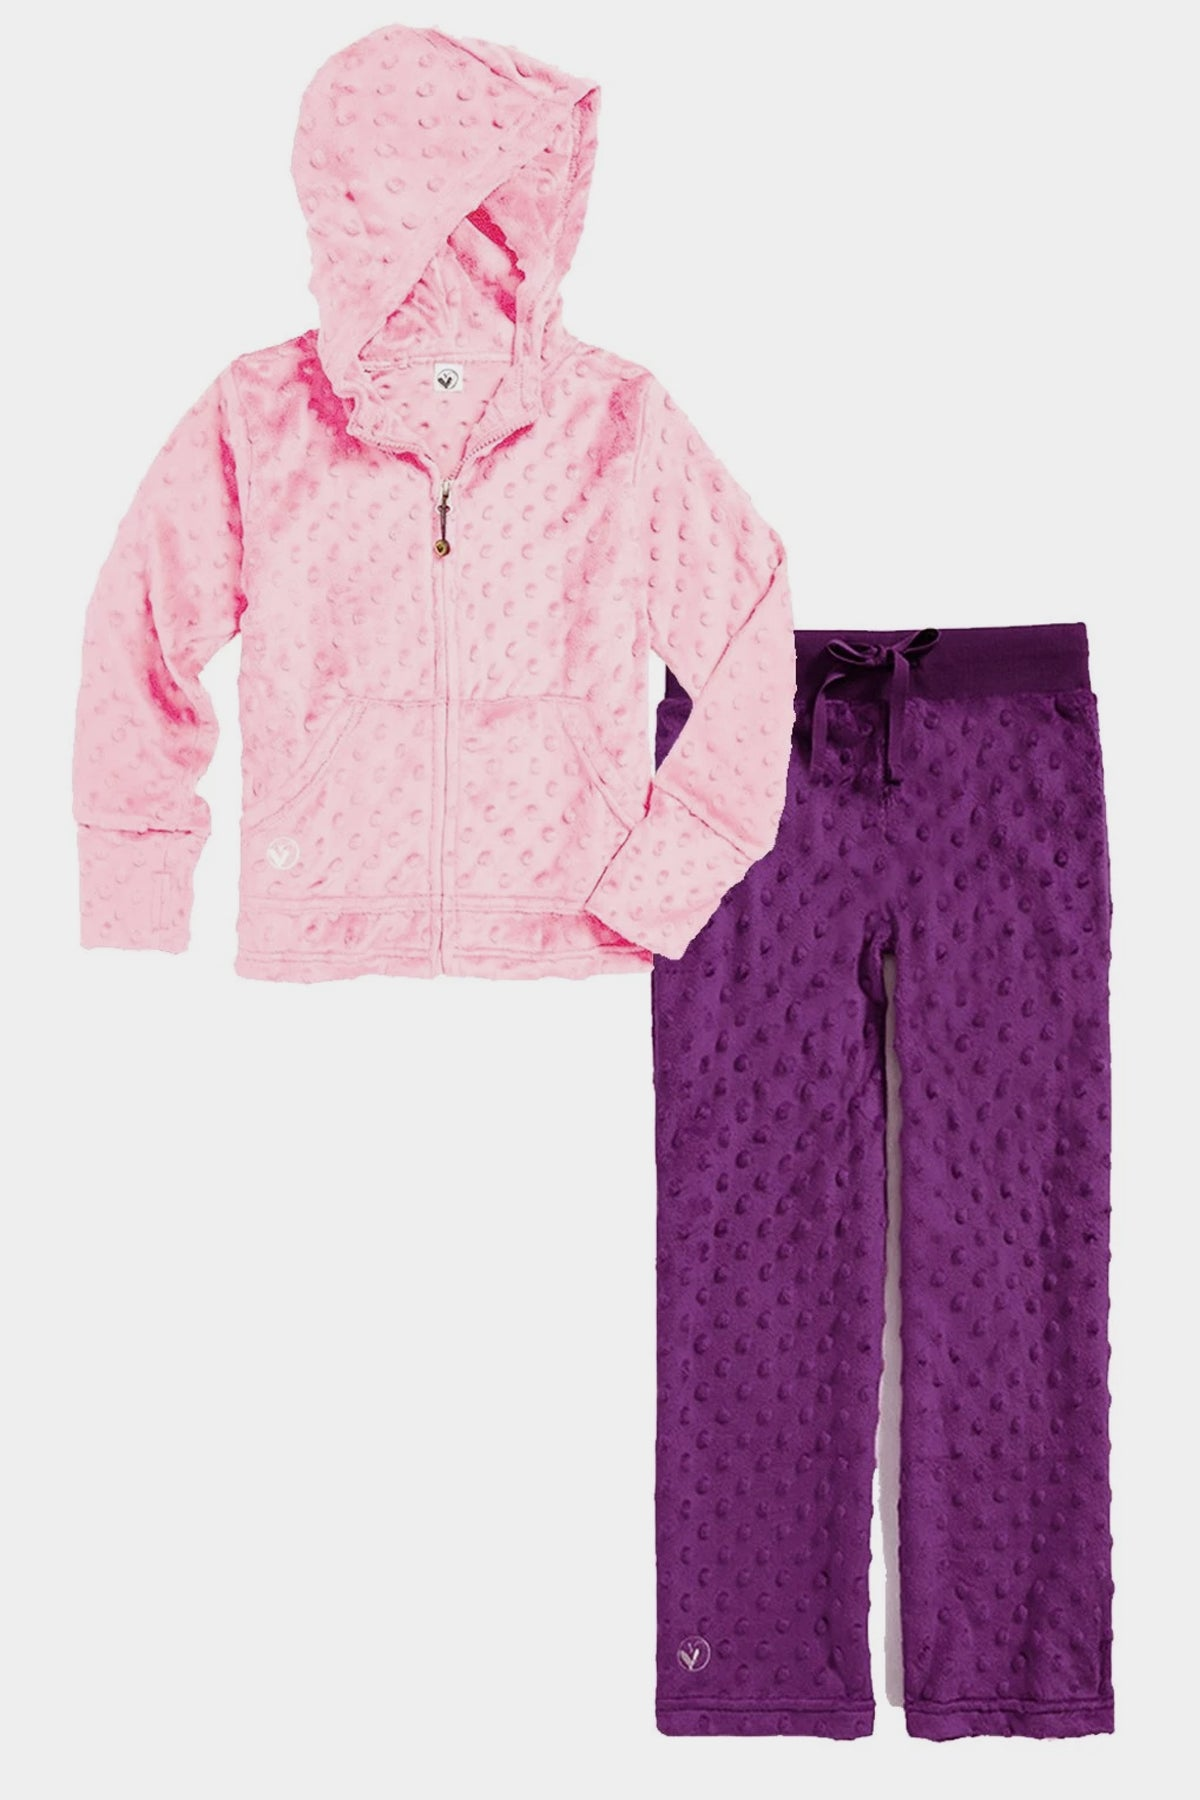 Minky Bubble Hoodie + Pant Set - Light Pink and Dark Purple